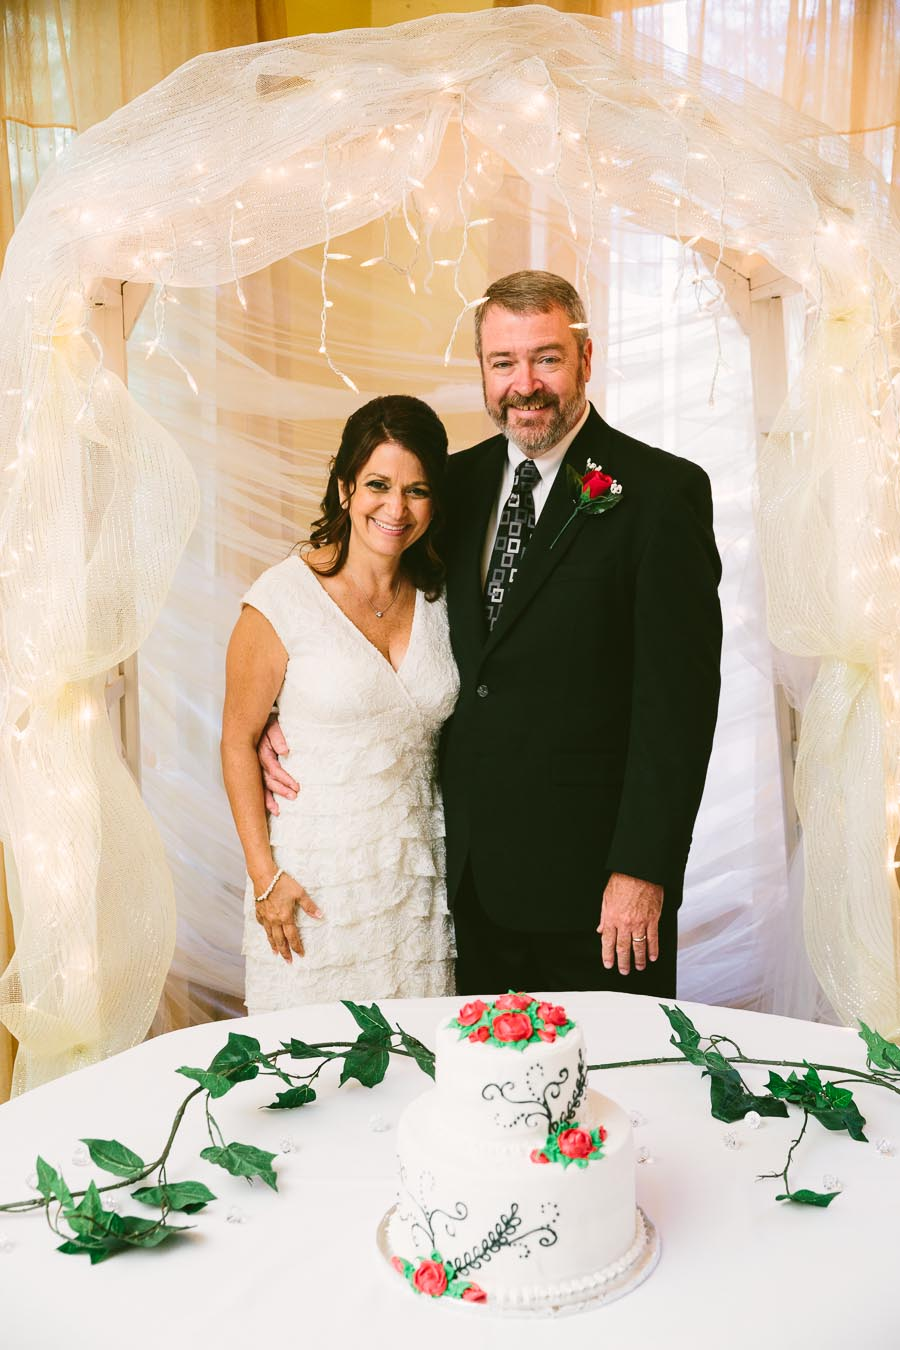 mohican-ohio-wedding-photography-landolls-castle-fall-32.jpg